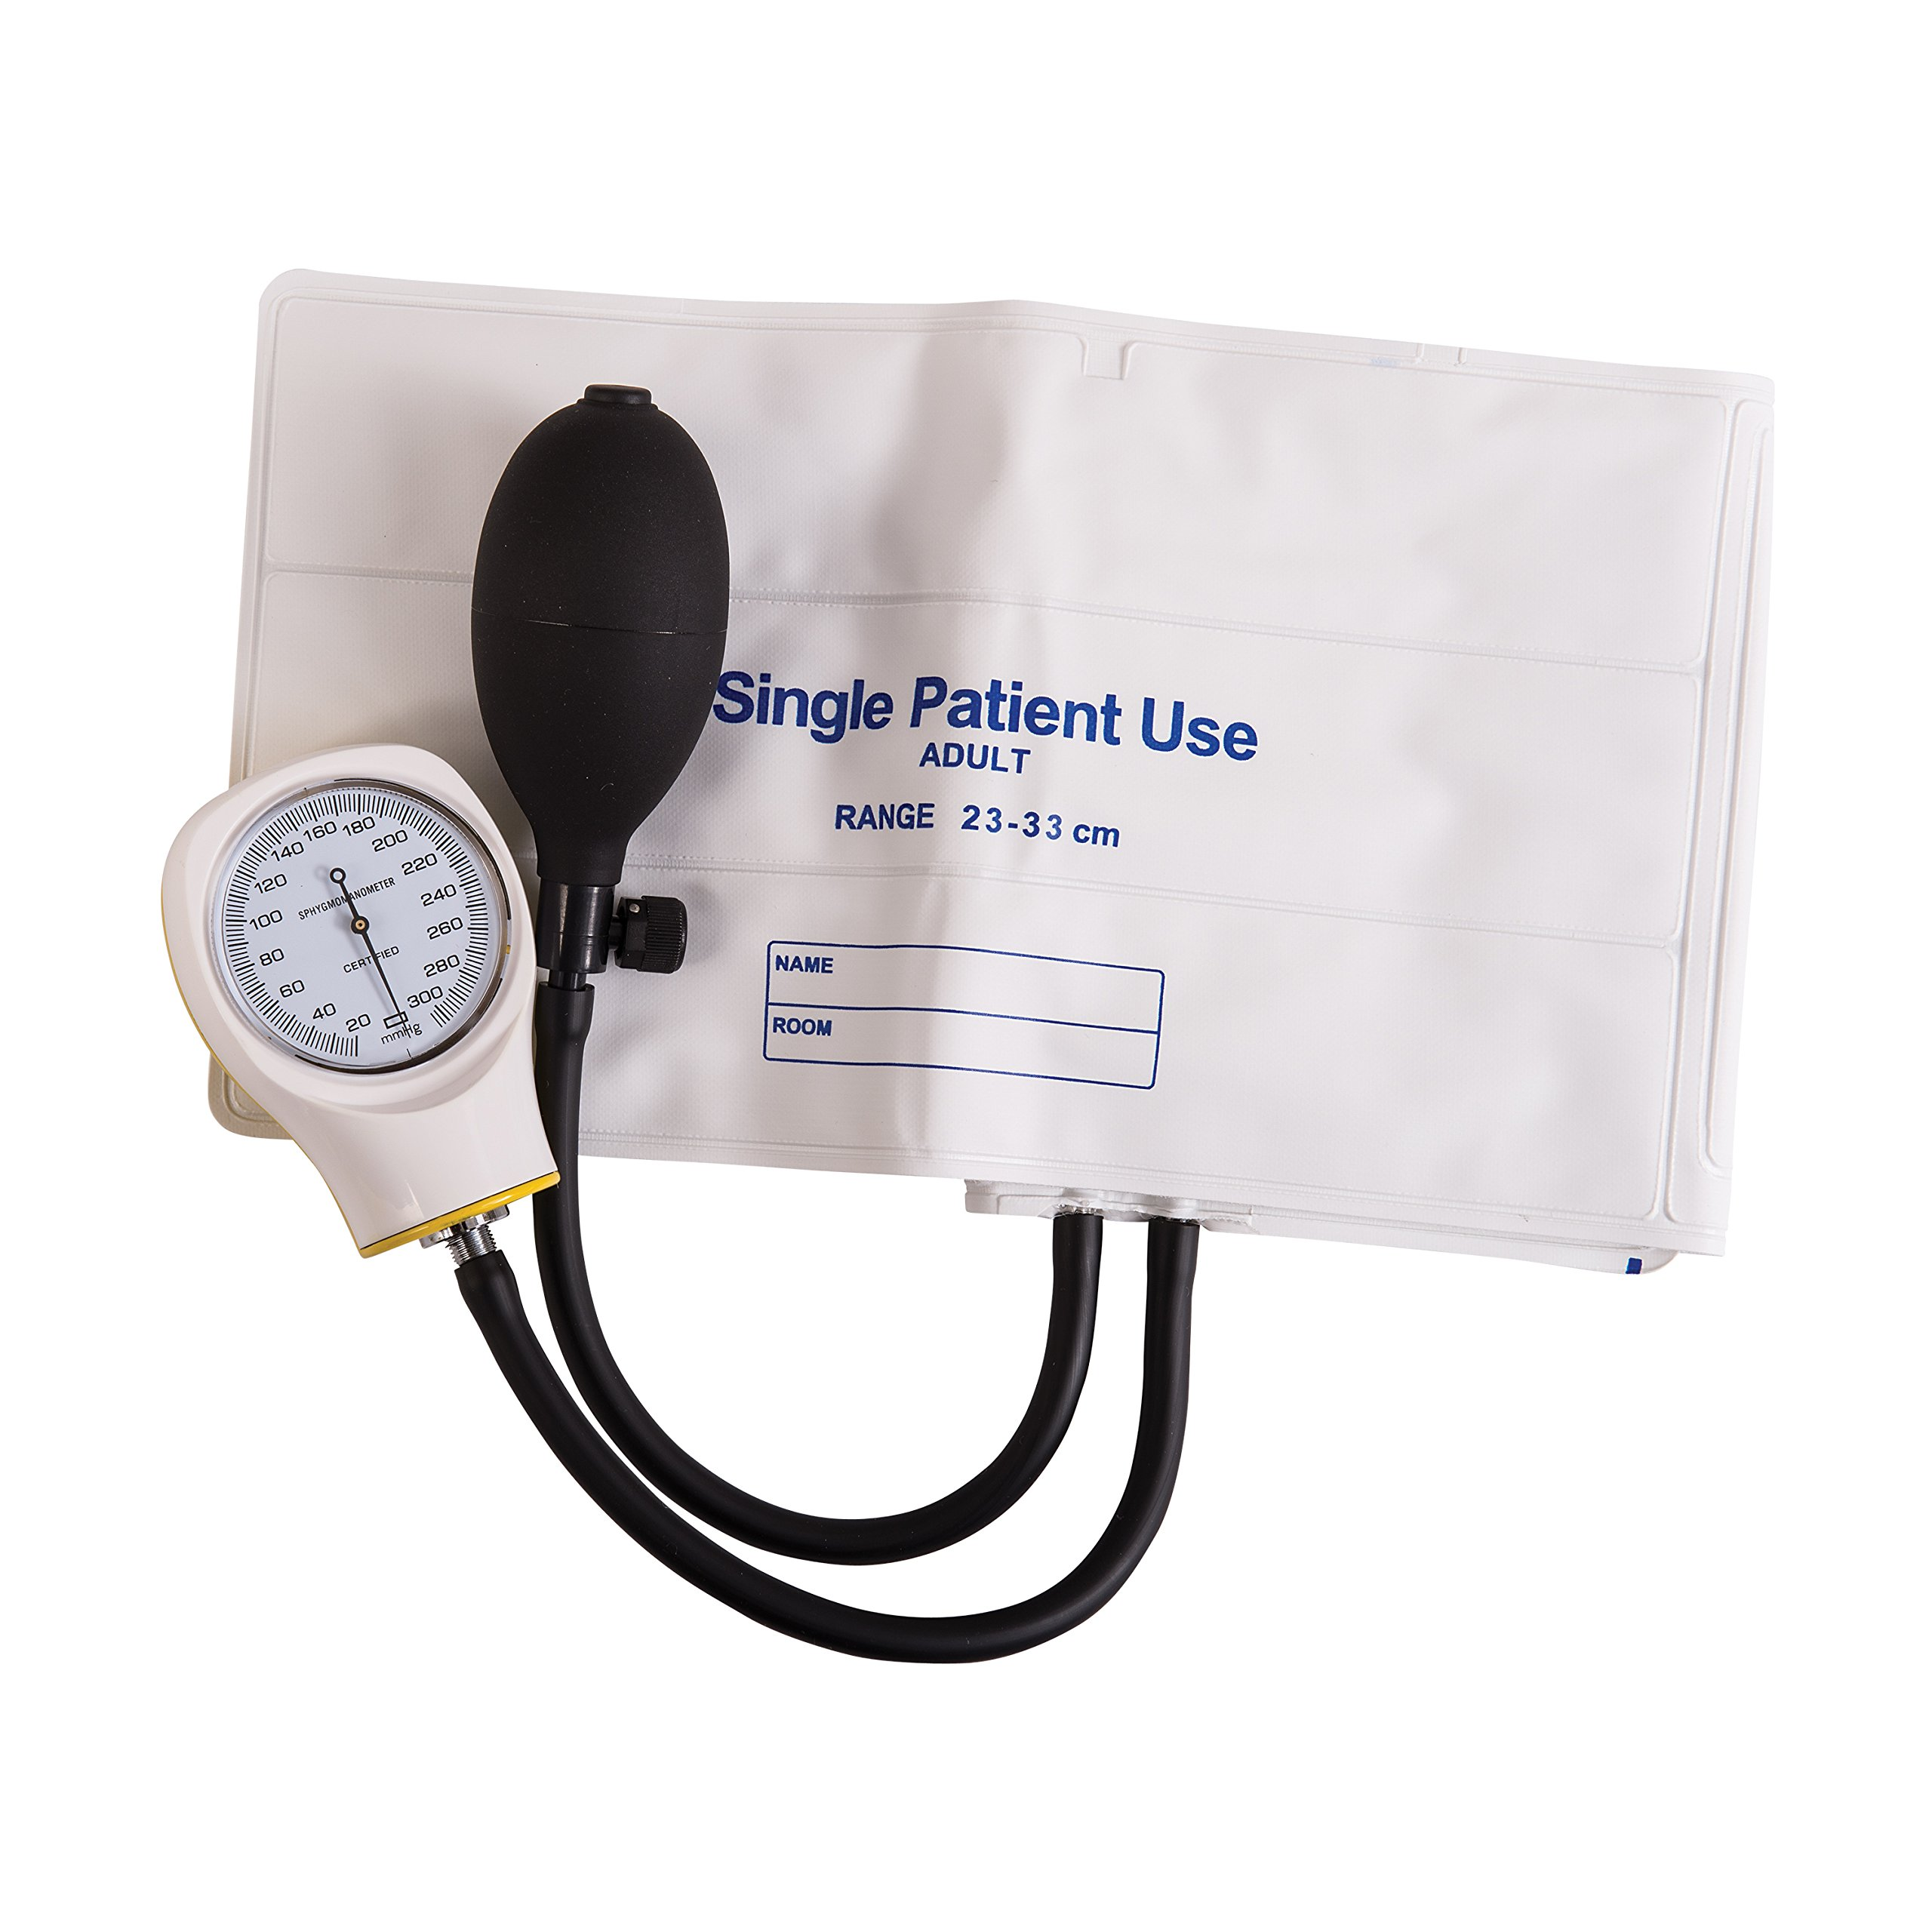 MABIS Disposable Sphygmomanometer Manual Arm Blood Pressure Cuffs, Single Use, Adult, Box of 5, White by Mabis (Image #3)